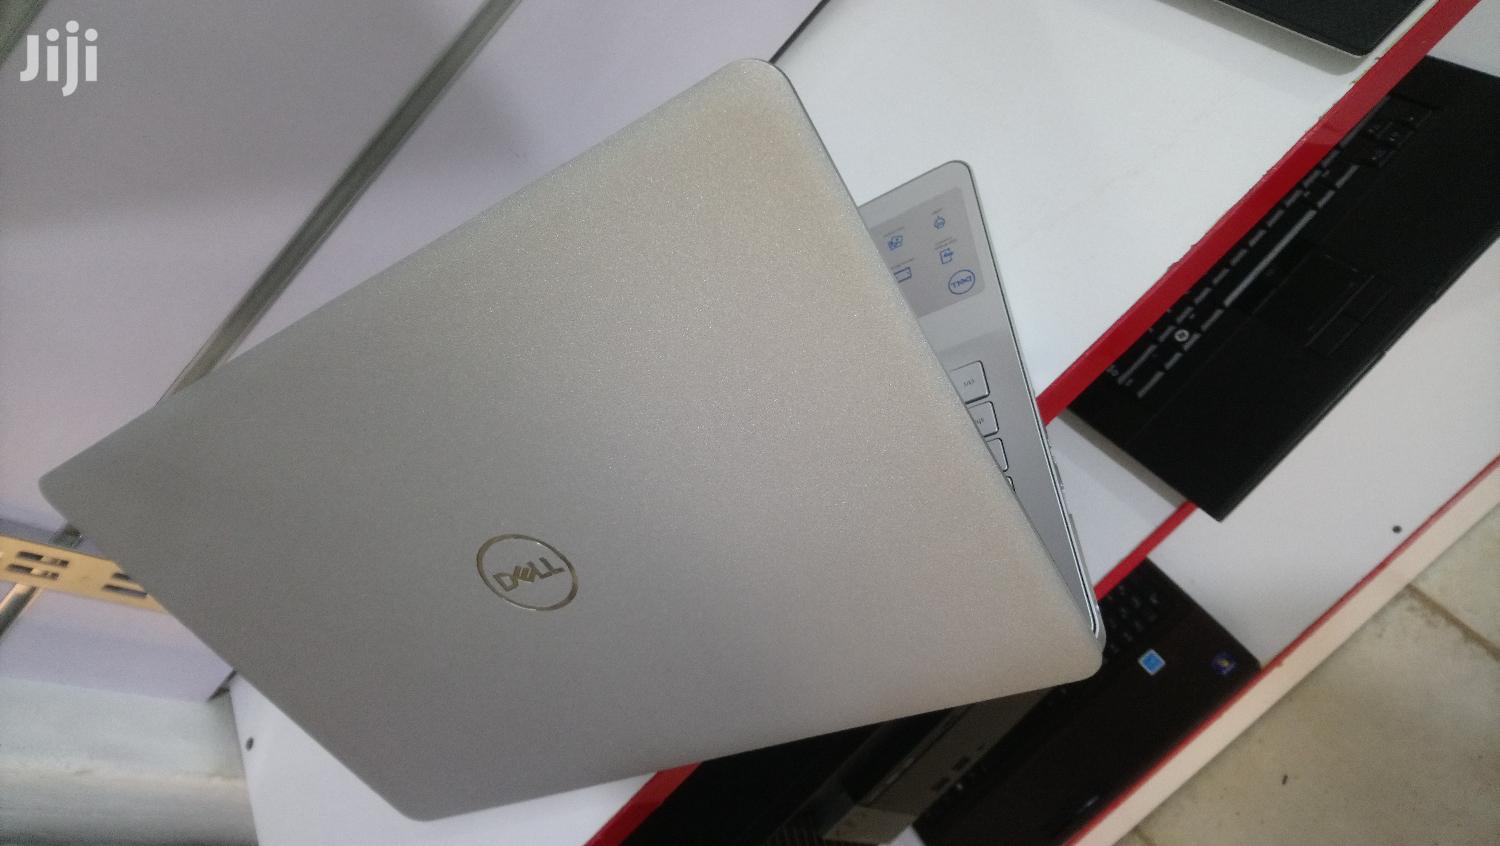 Laptop Dell Inspiron 15 5000 8GB Intel Core I7 SSHD (Hybrid) 500GB